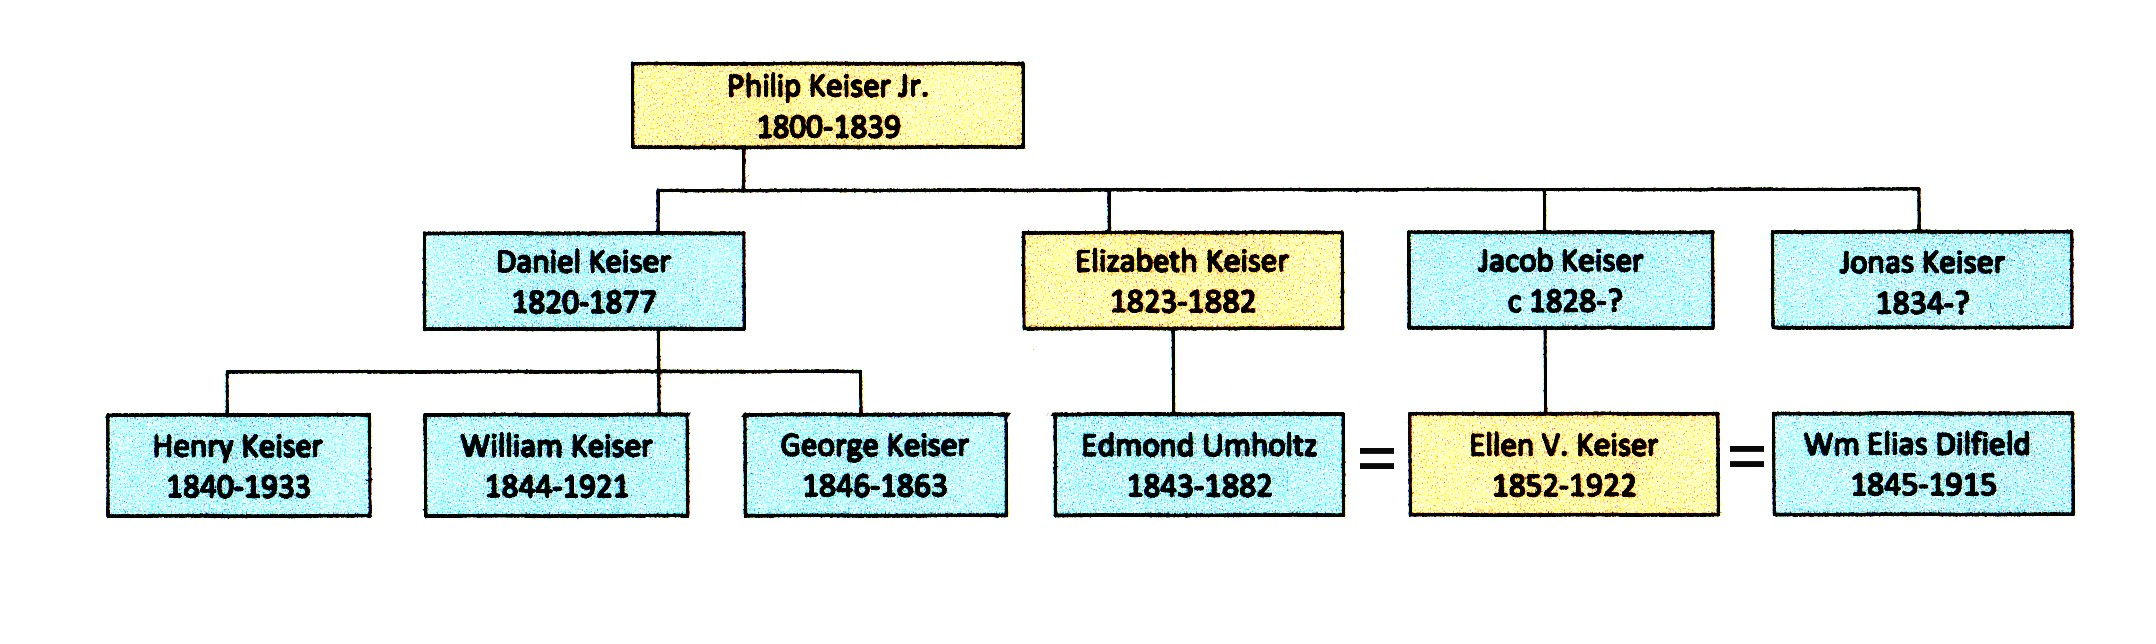 Civil War Blog » Descendants of Philip Keiser Jr. in the Civil War ...